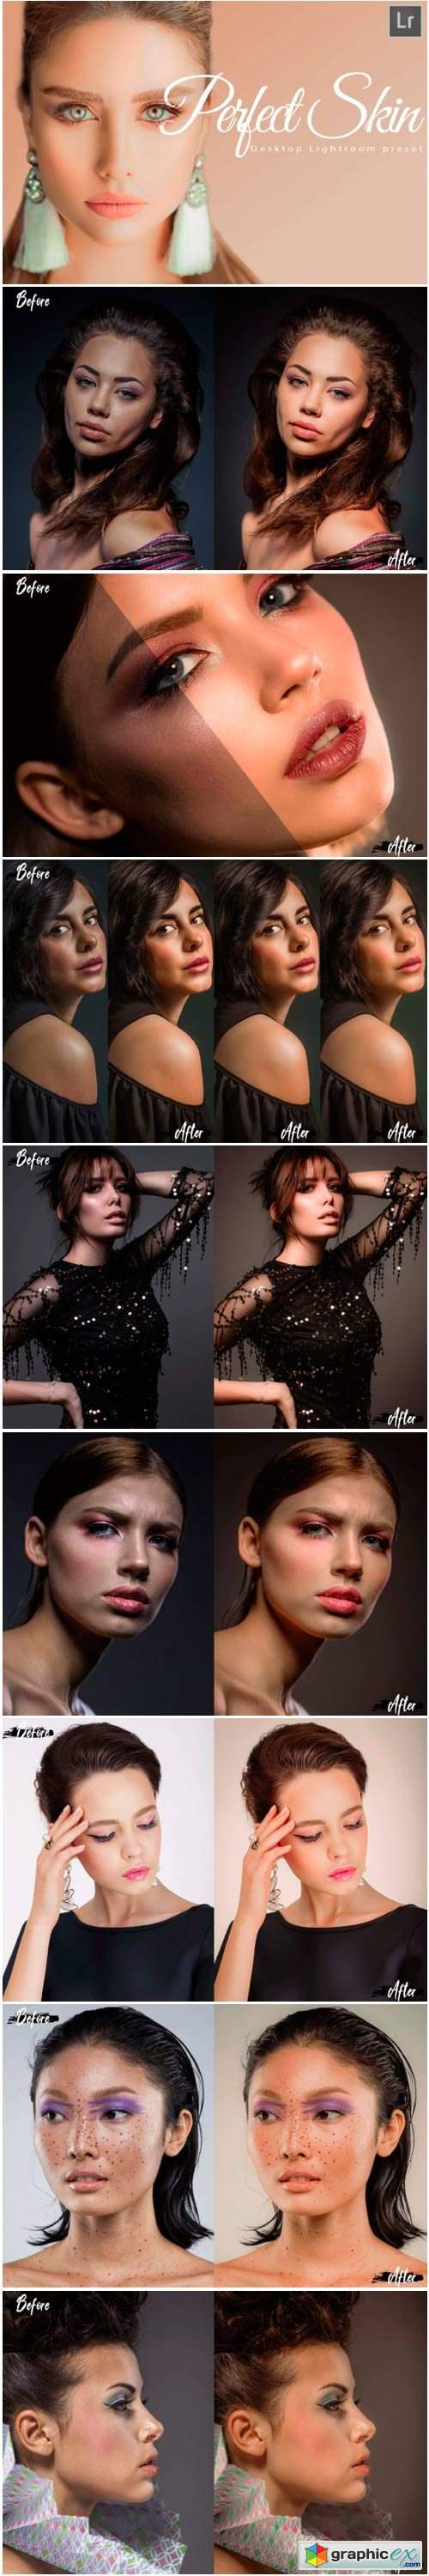 18 Perfect Skin Desktop Lightroom Preset